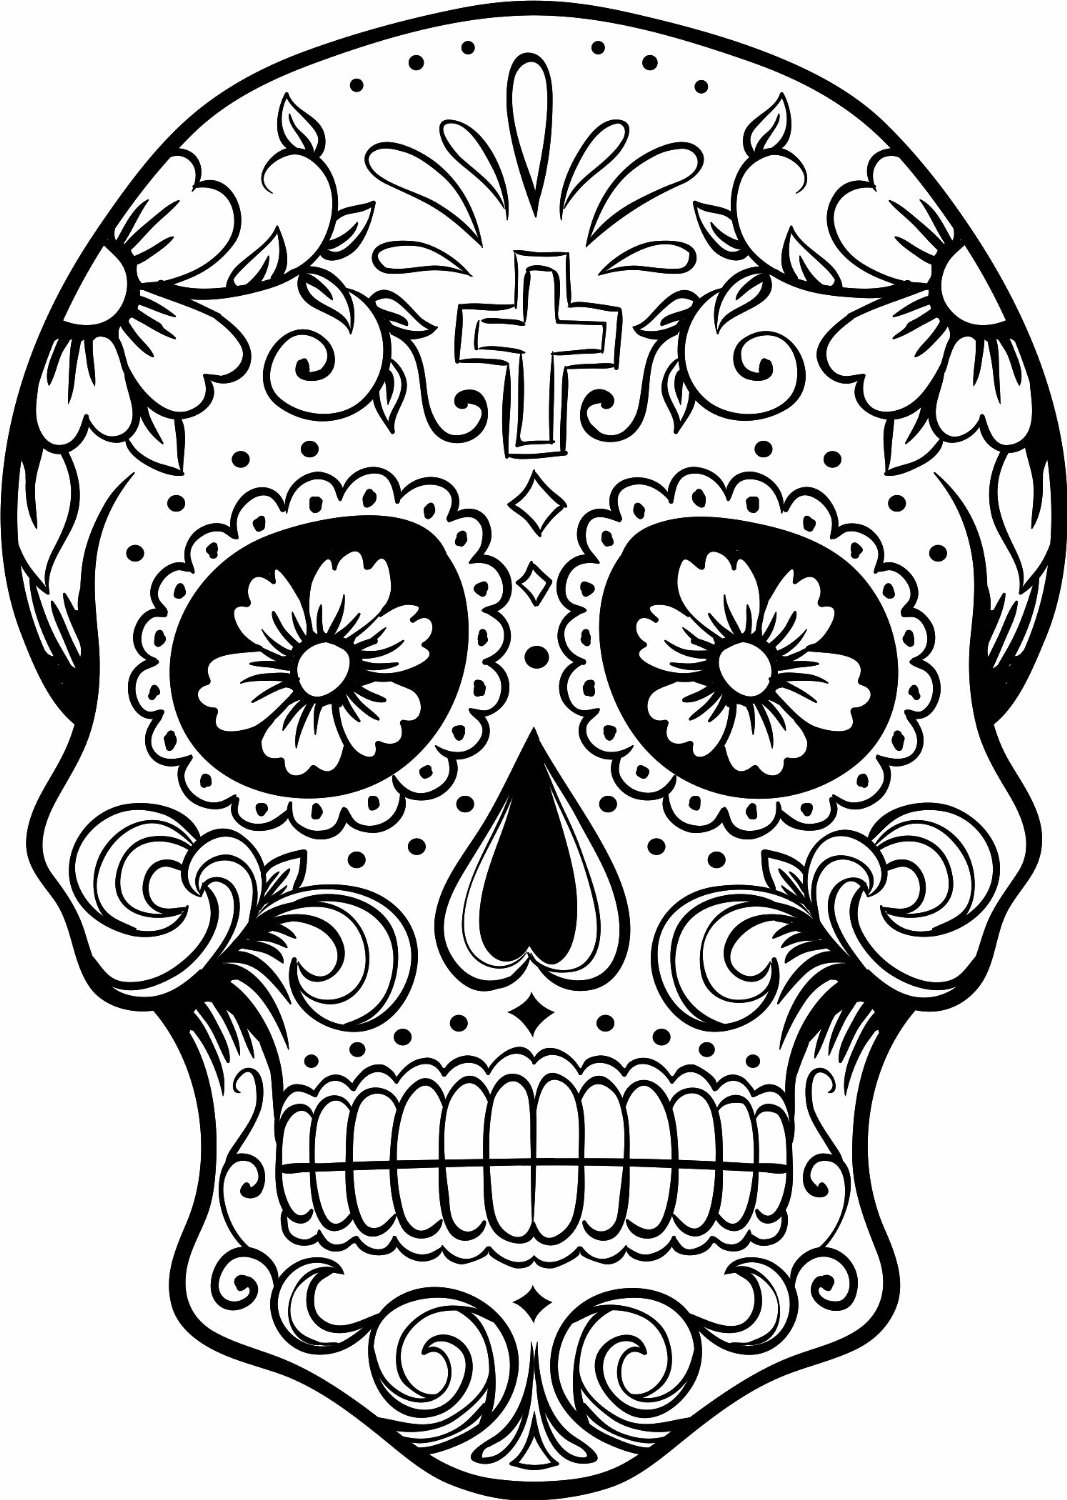 coloring skull day of the dead dia de los muertos skulls coloring pages at getcolorings day the coloring dead of skull